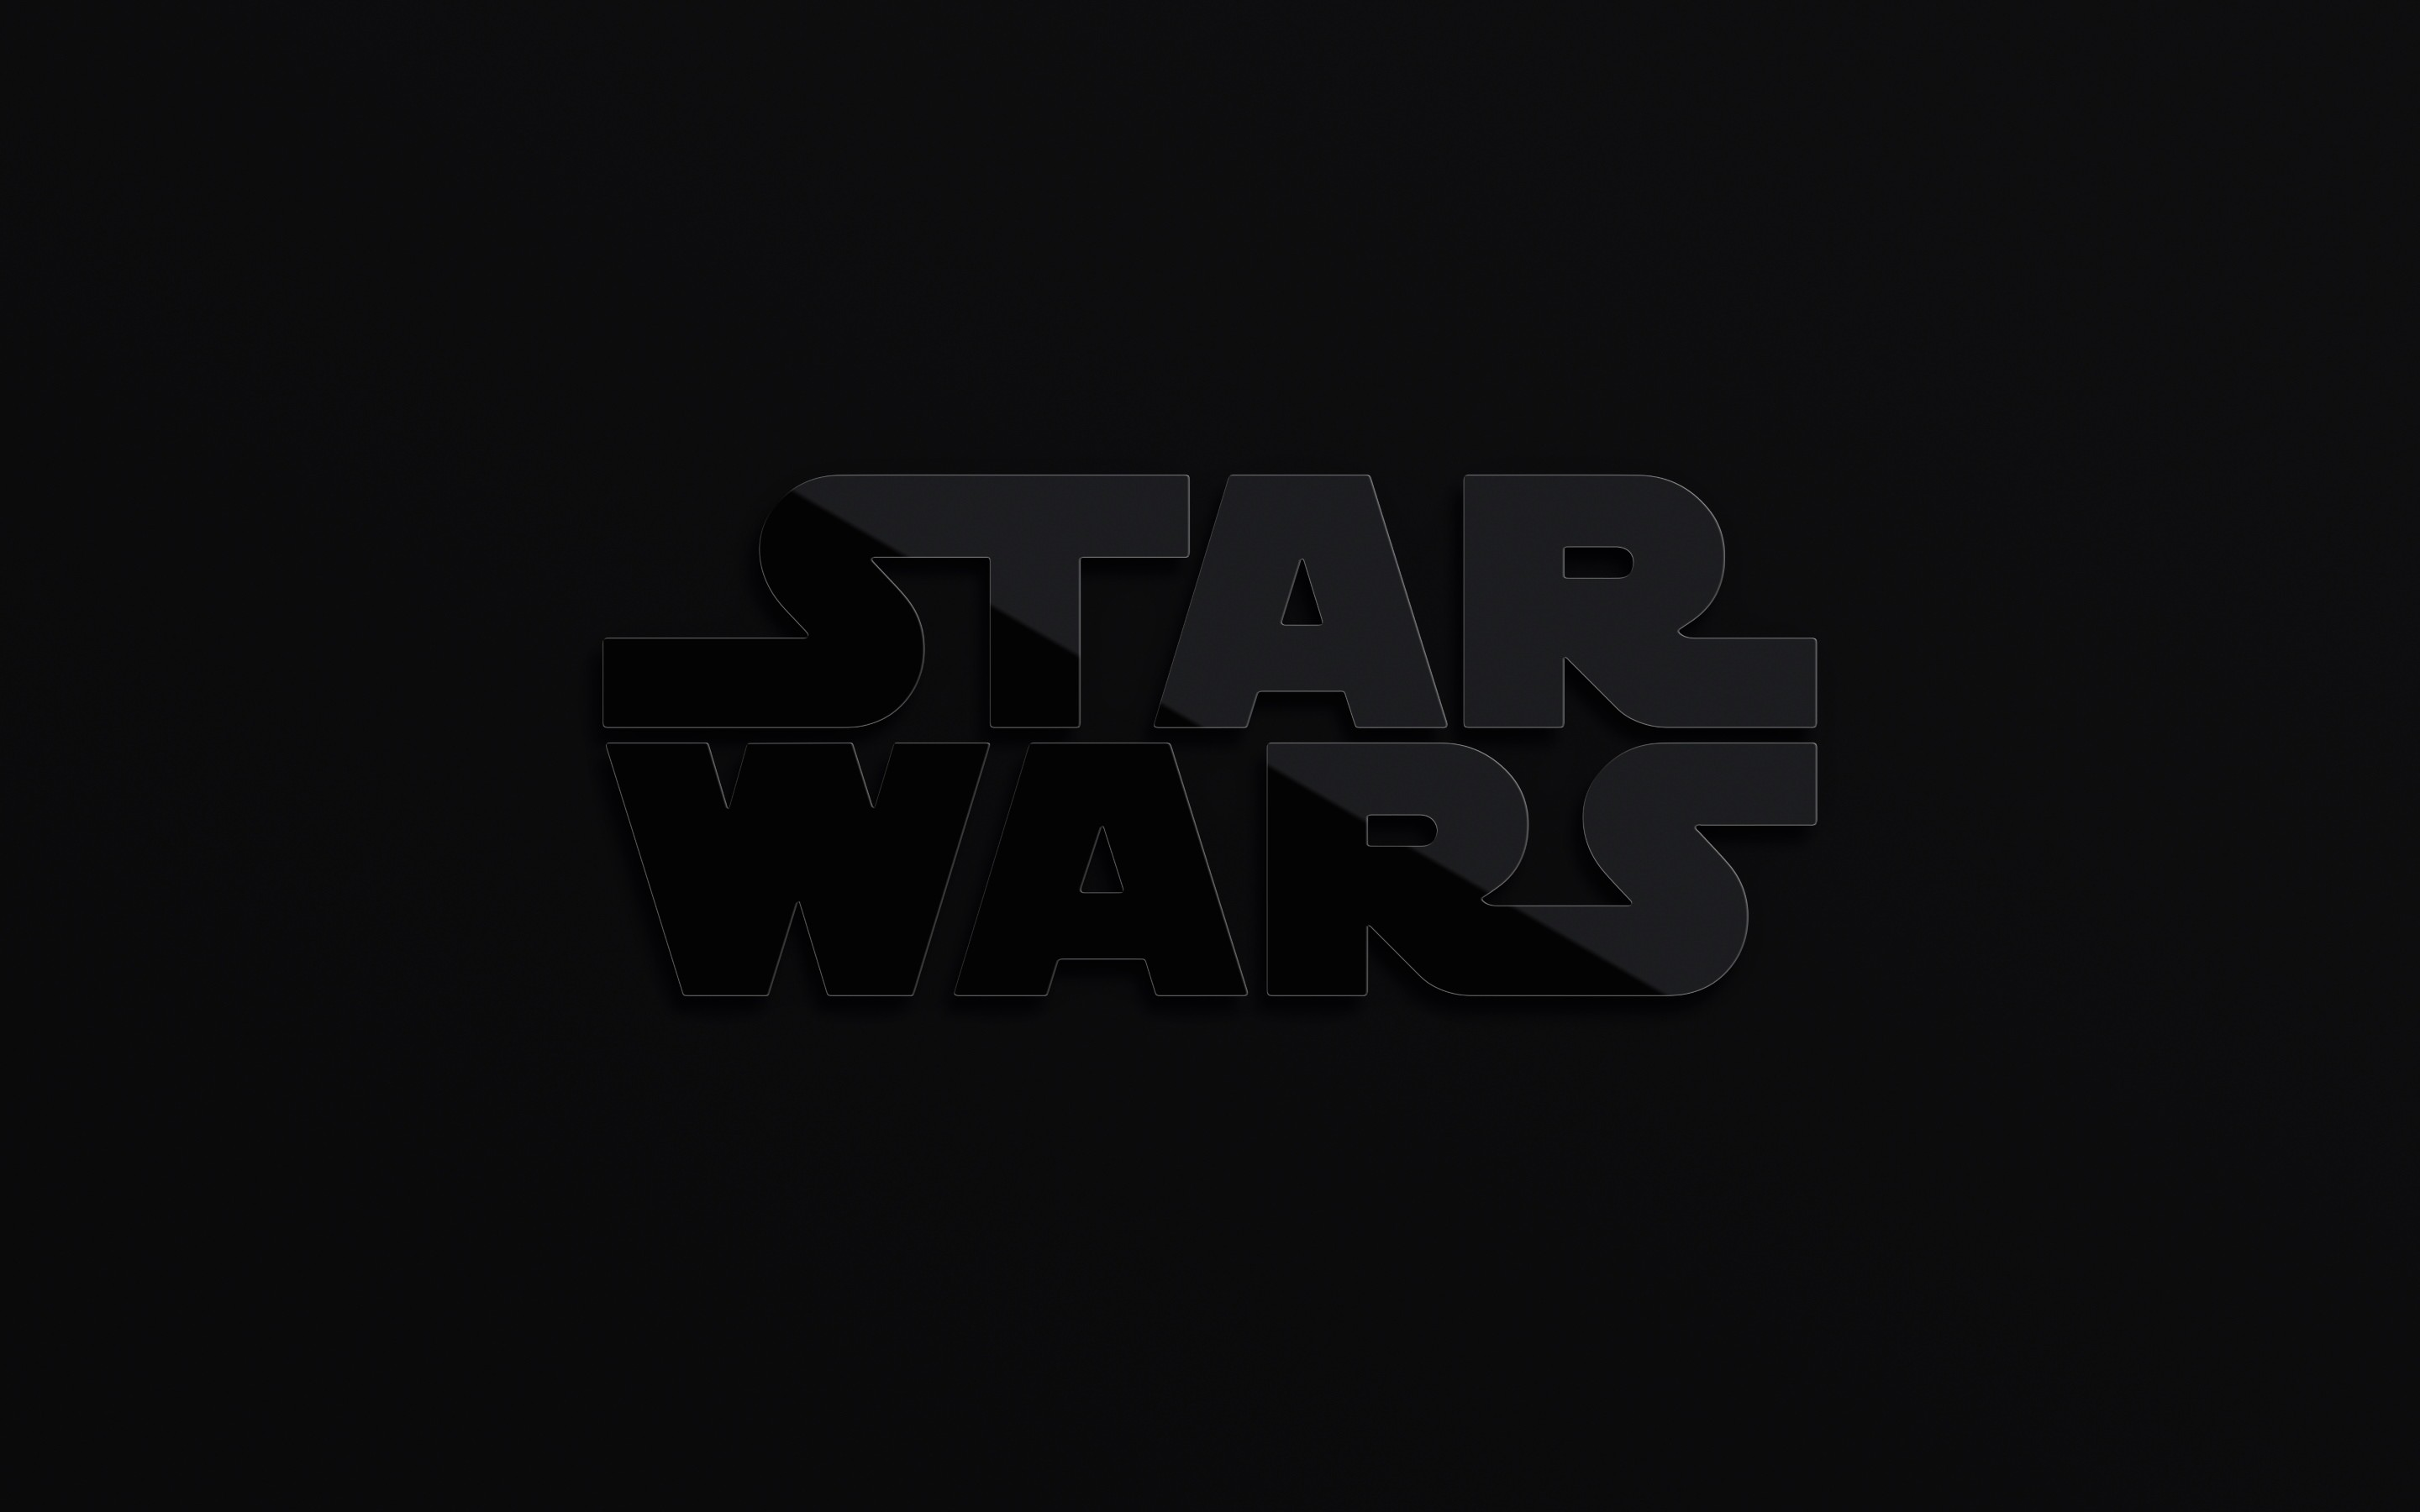 Star Wars Desktop Wallpaper 69+ images